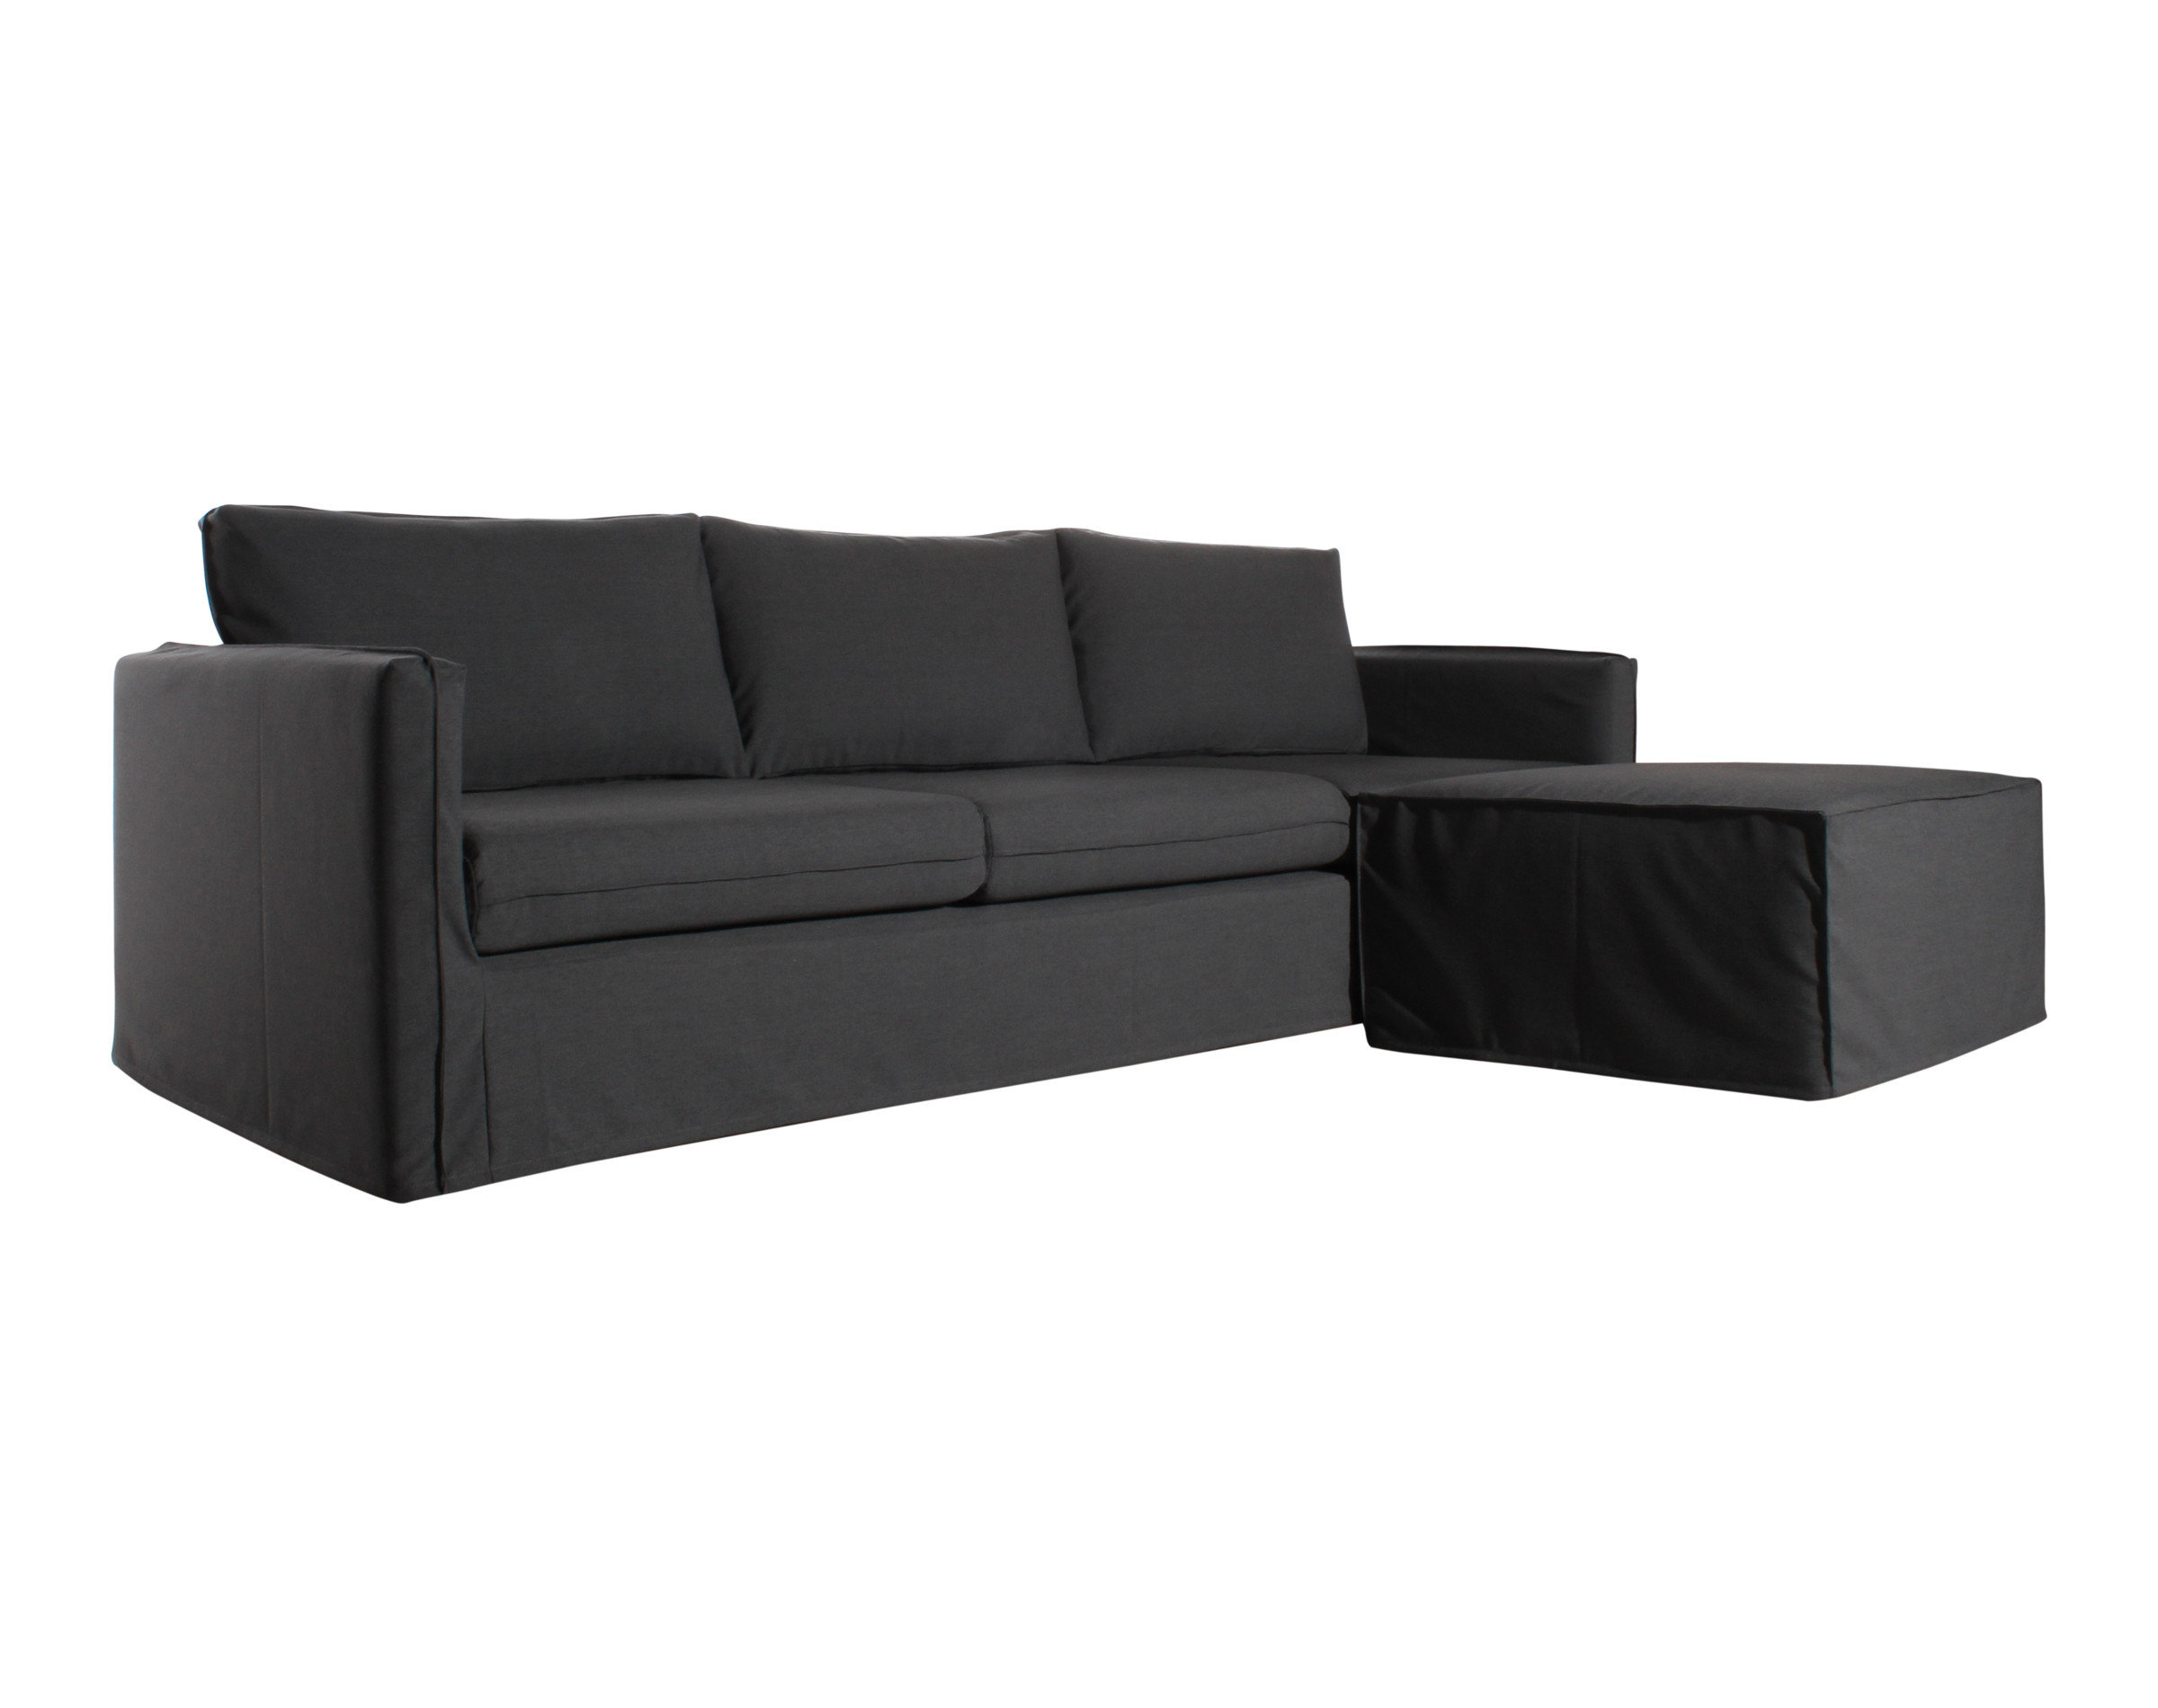 sofa color acero con chaise